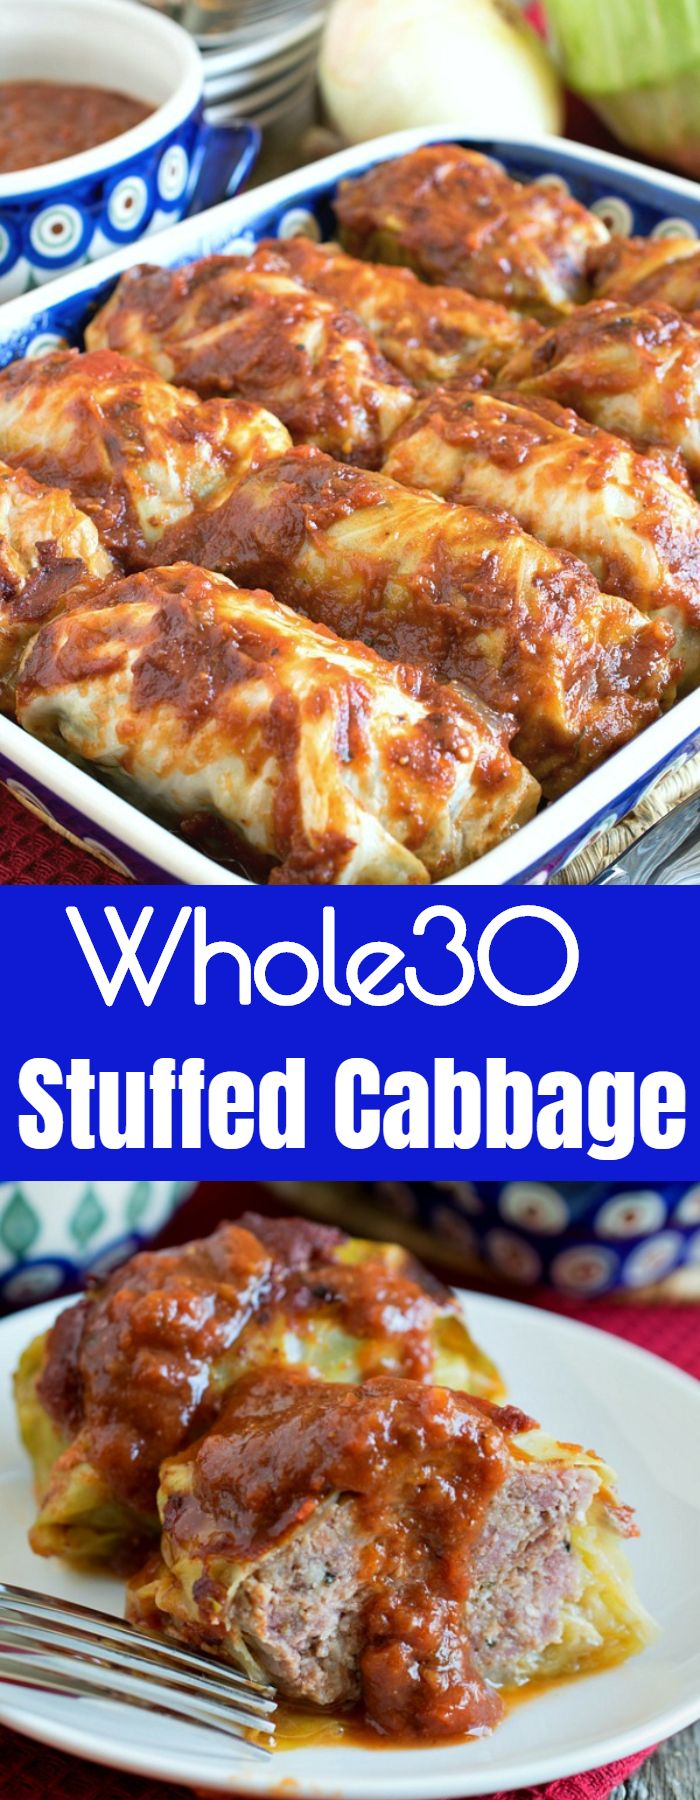 Whole30 Stuffed Cabbage